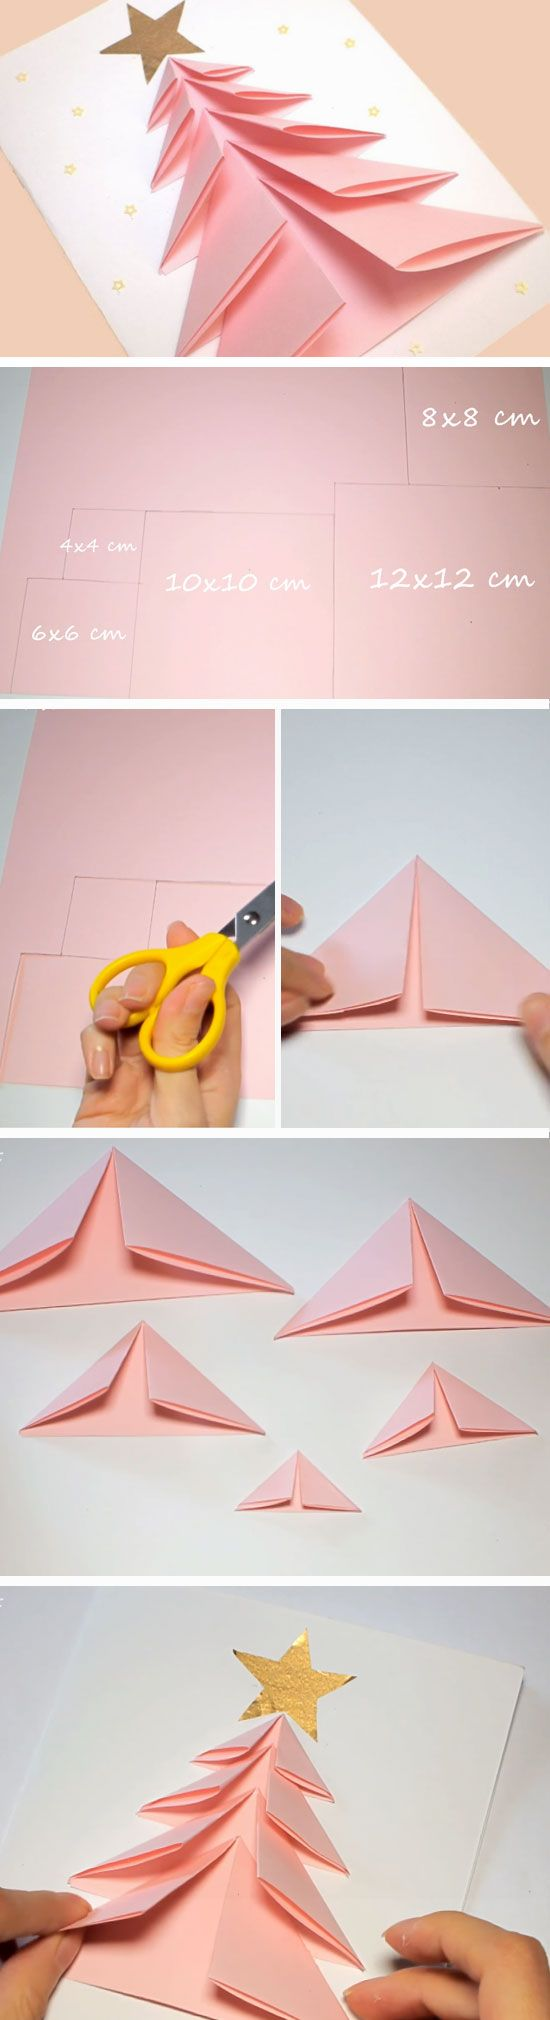 #home #decor #decoration #dekoration #einrichtung #lifestyle #design #interior #diy #tutorial Pink Tree | Easy Holiday Cards Simple Christmas | DIY Christmas Crafts for Kids Easy